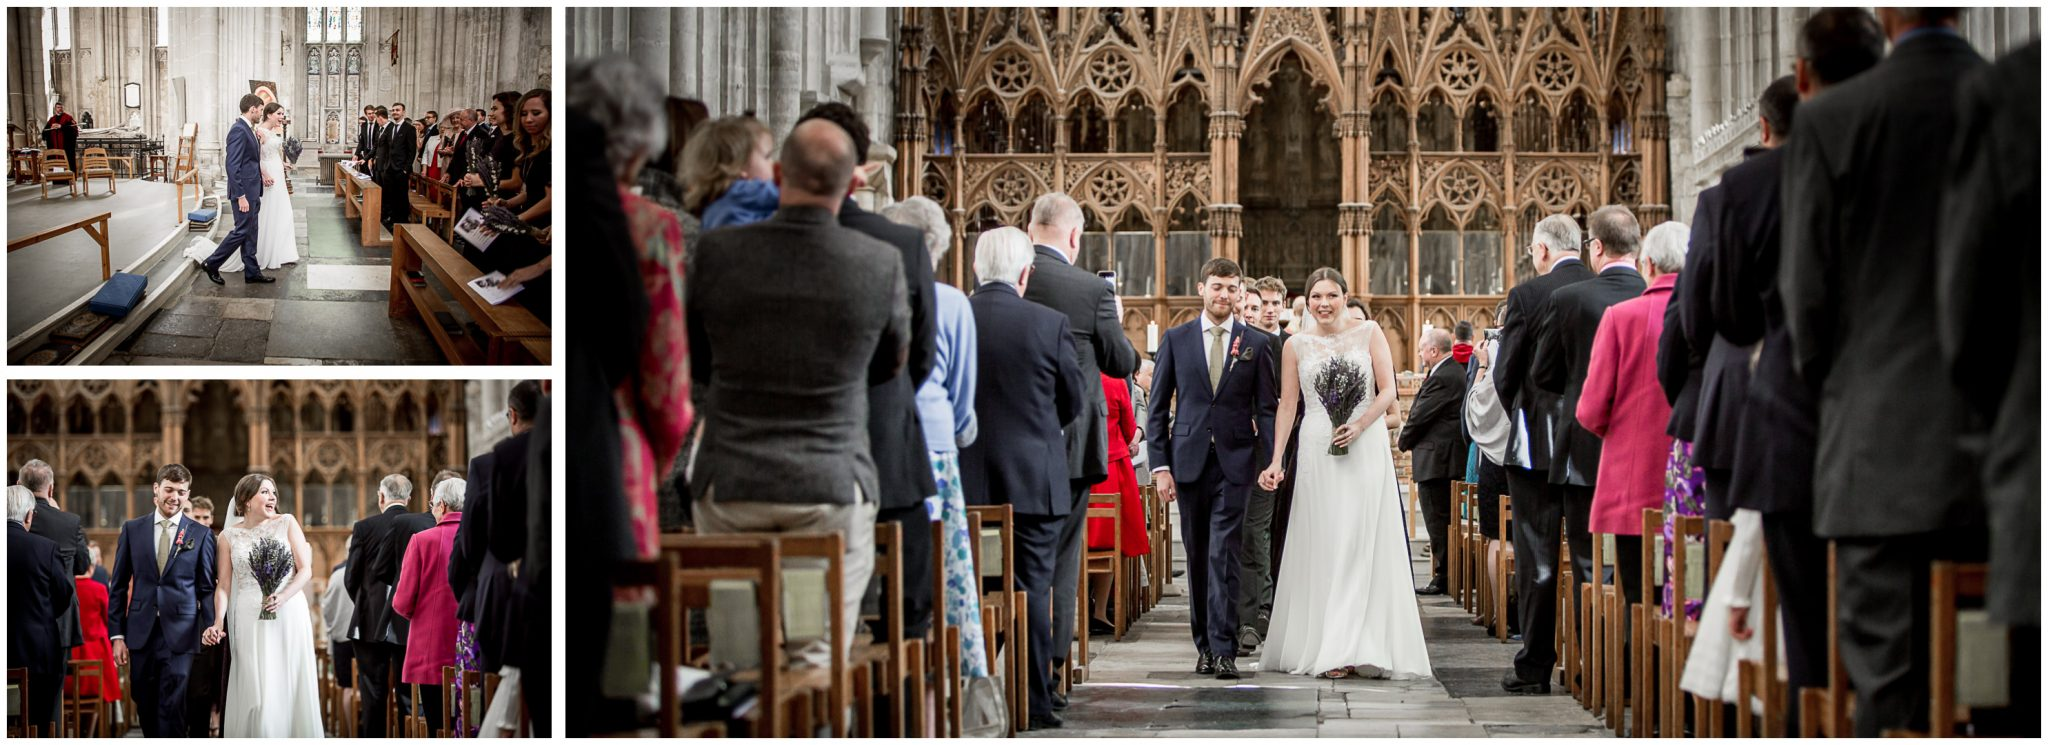 winchester cathedral wedding photography bride and groom walk down aisle together